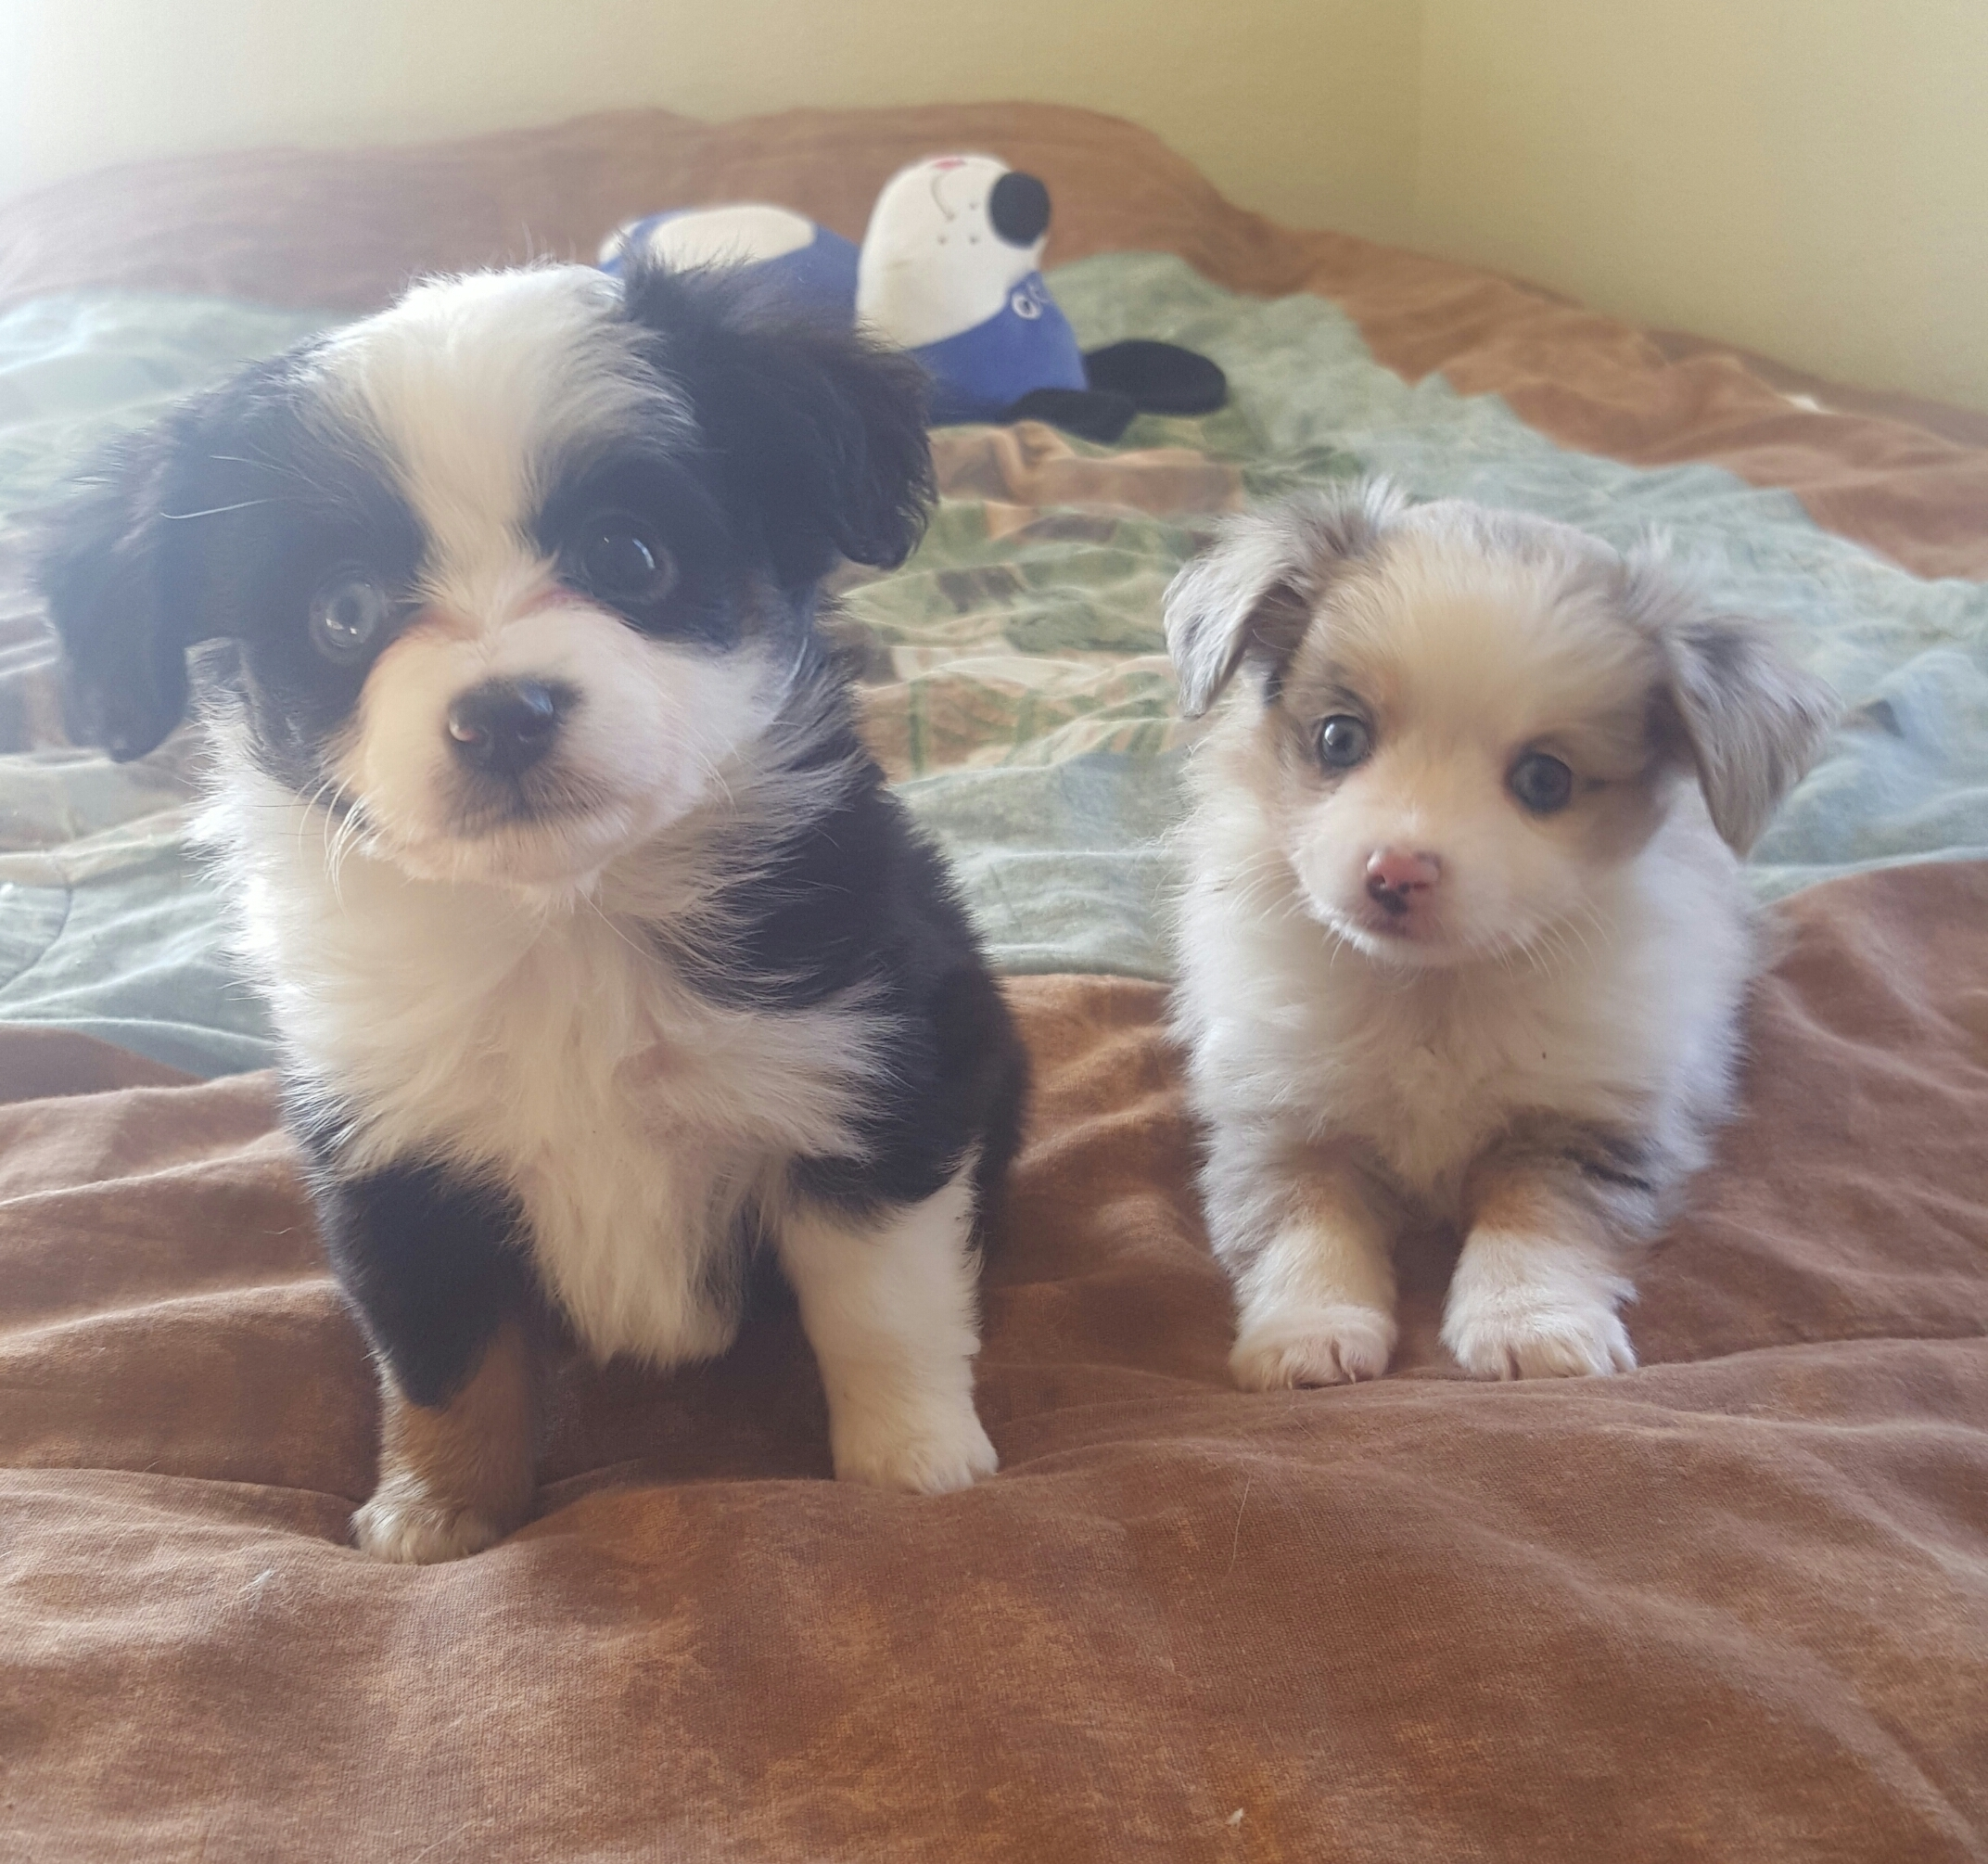 toy aussie puppies for sale $500 two y ranch teacup australian shepherd near me breeders chihuahua columbia sc blue aussiedoodle south carolina merle south north dakota chi kansas ks new york ny pennsylvania pa west virginia wv texas city tx